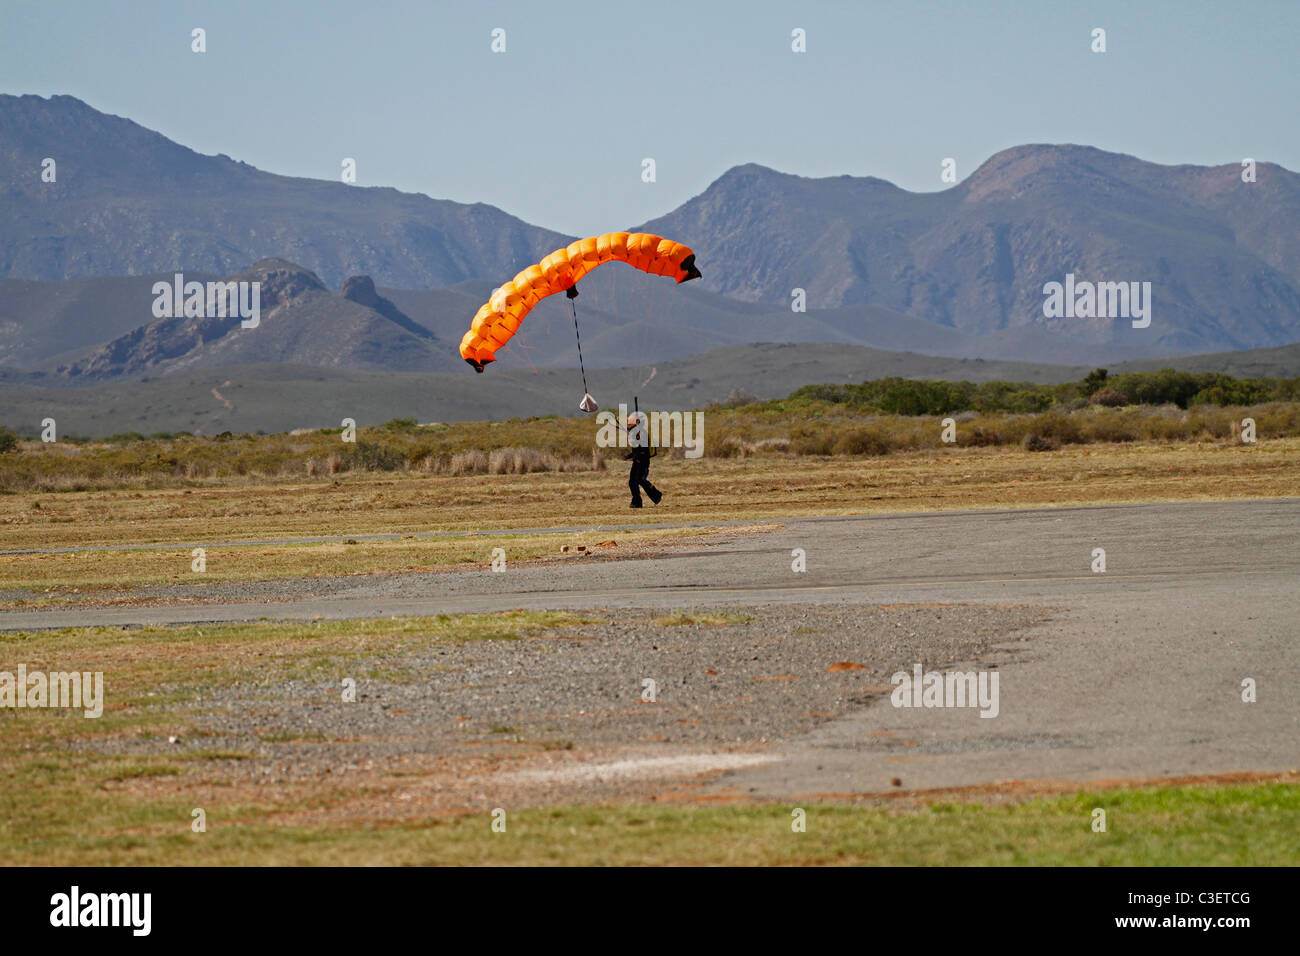 Skydiver landing at Robertson Airfield in the Western Cape after a successful jump. - Stock Image